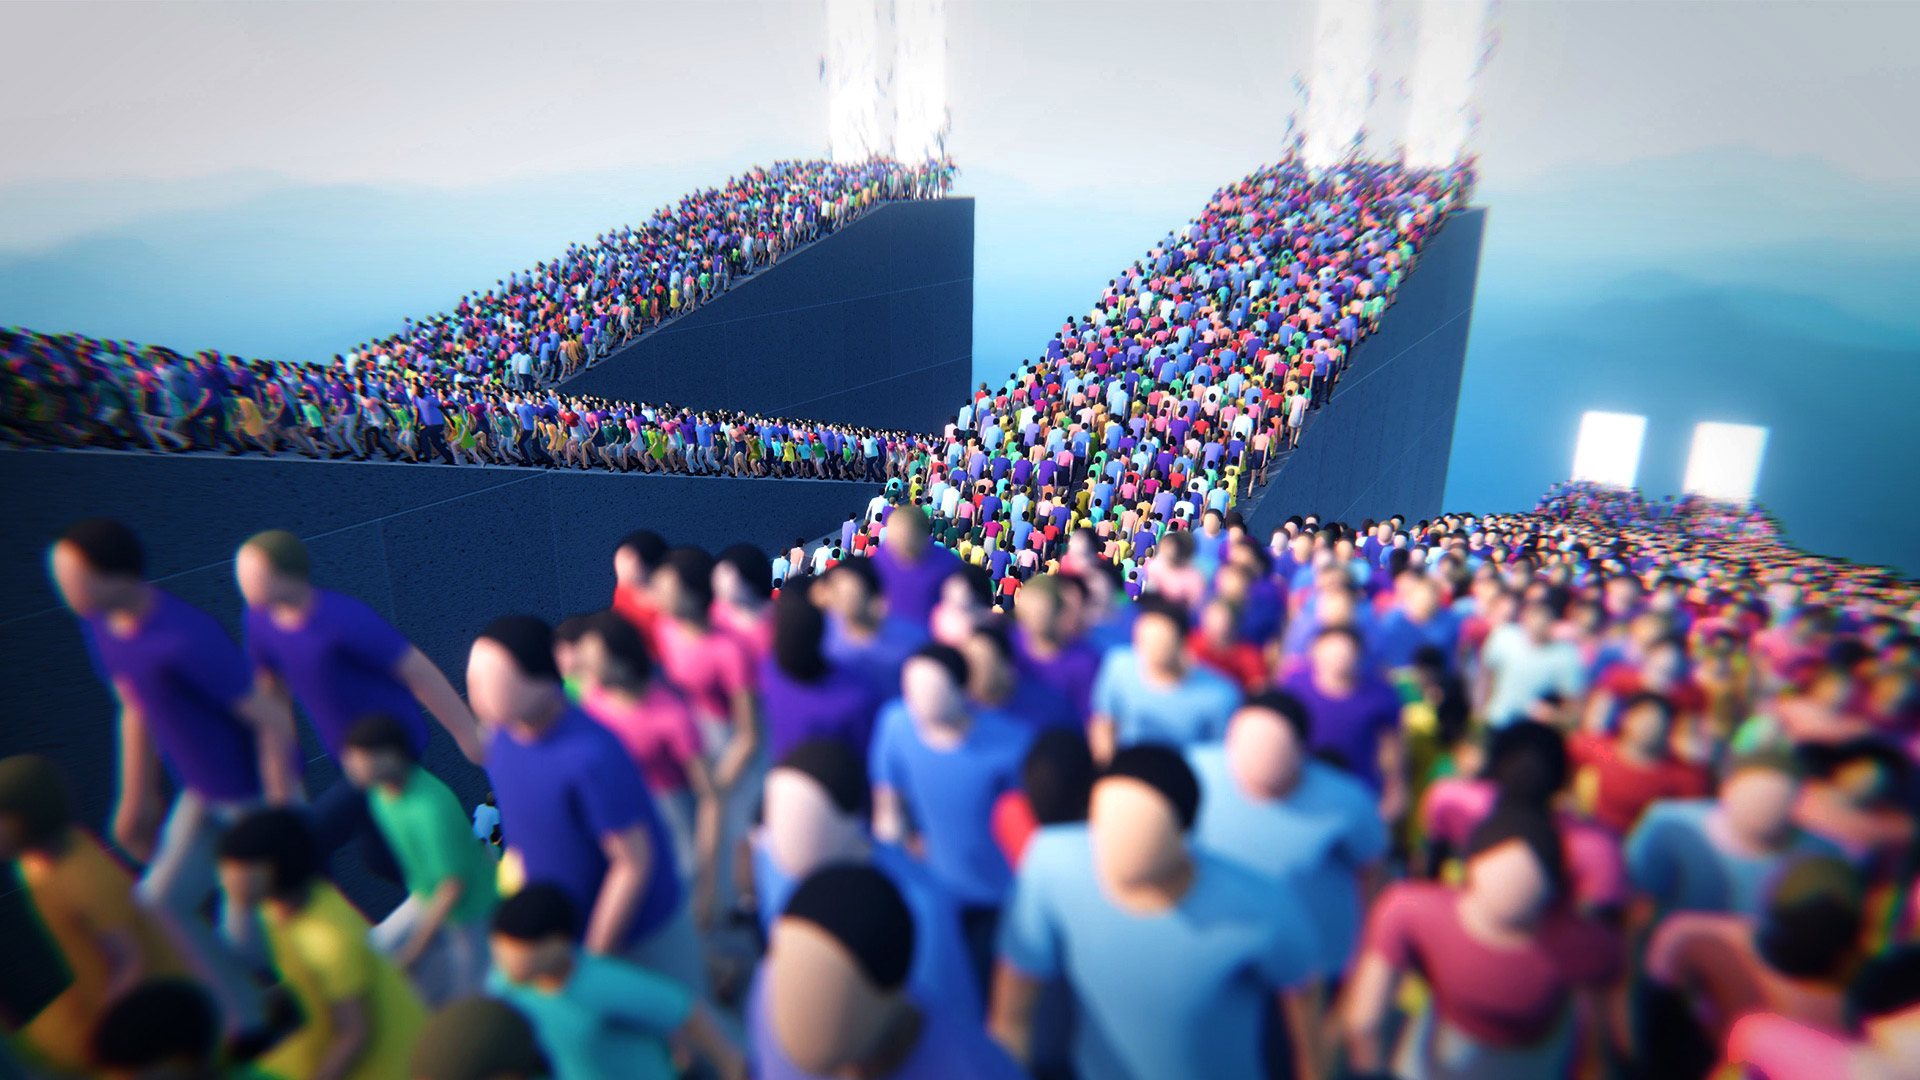 Psvr Games 2020.Humanity Makes Gameplay From Massive Crowd Simulation